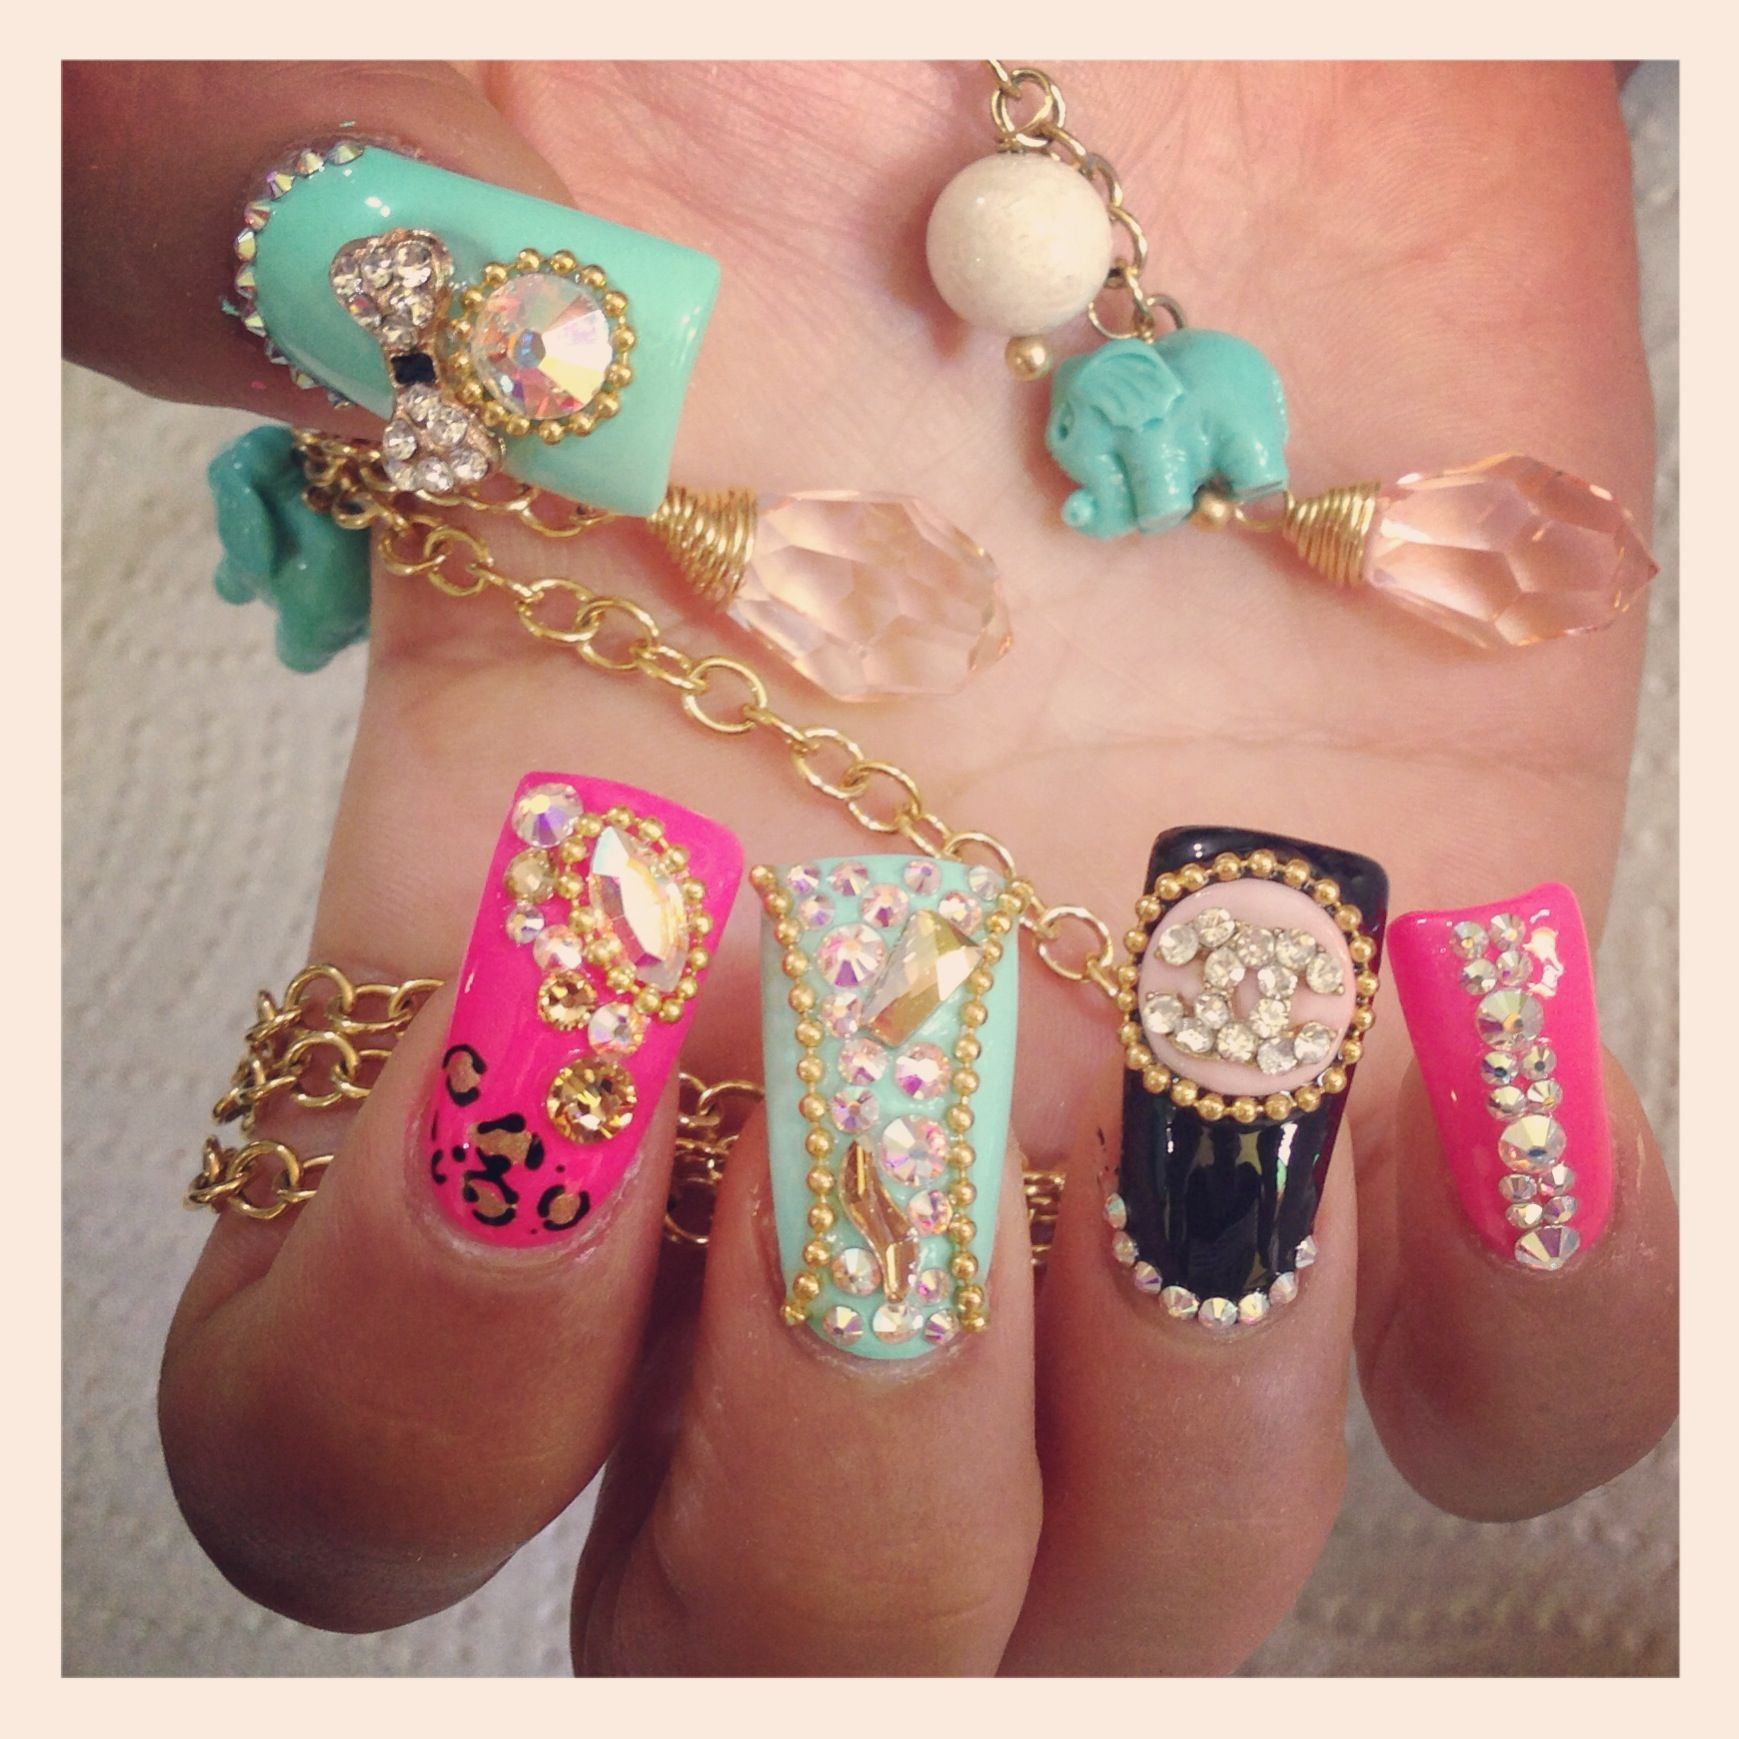 Bling flare tip nails | duck feet nails | wide nails | fan nails ...